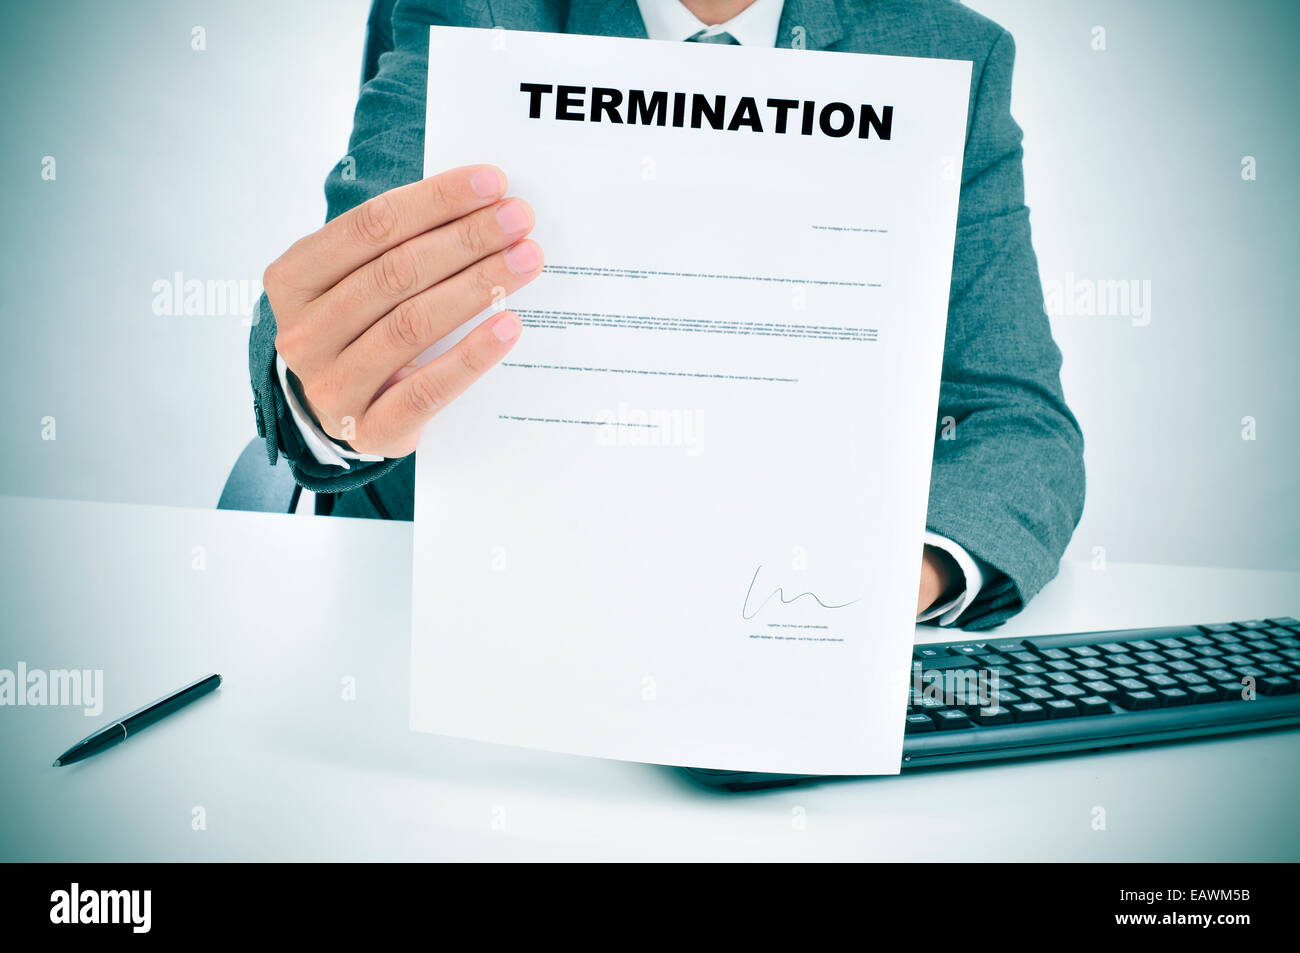 a man in suit in his desk showing a figured signed termination document - Stock Image